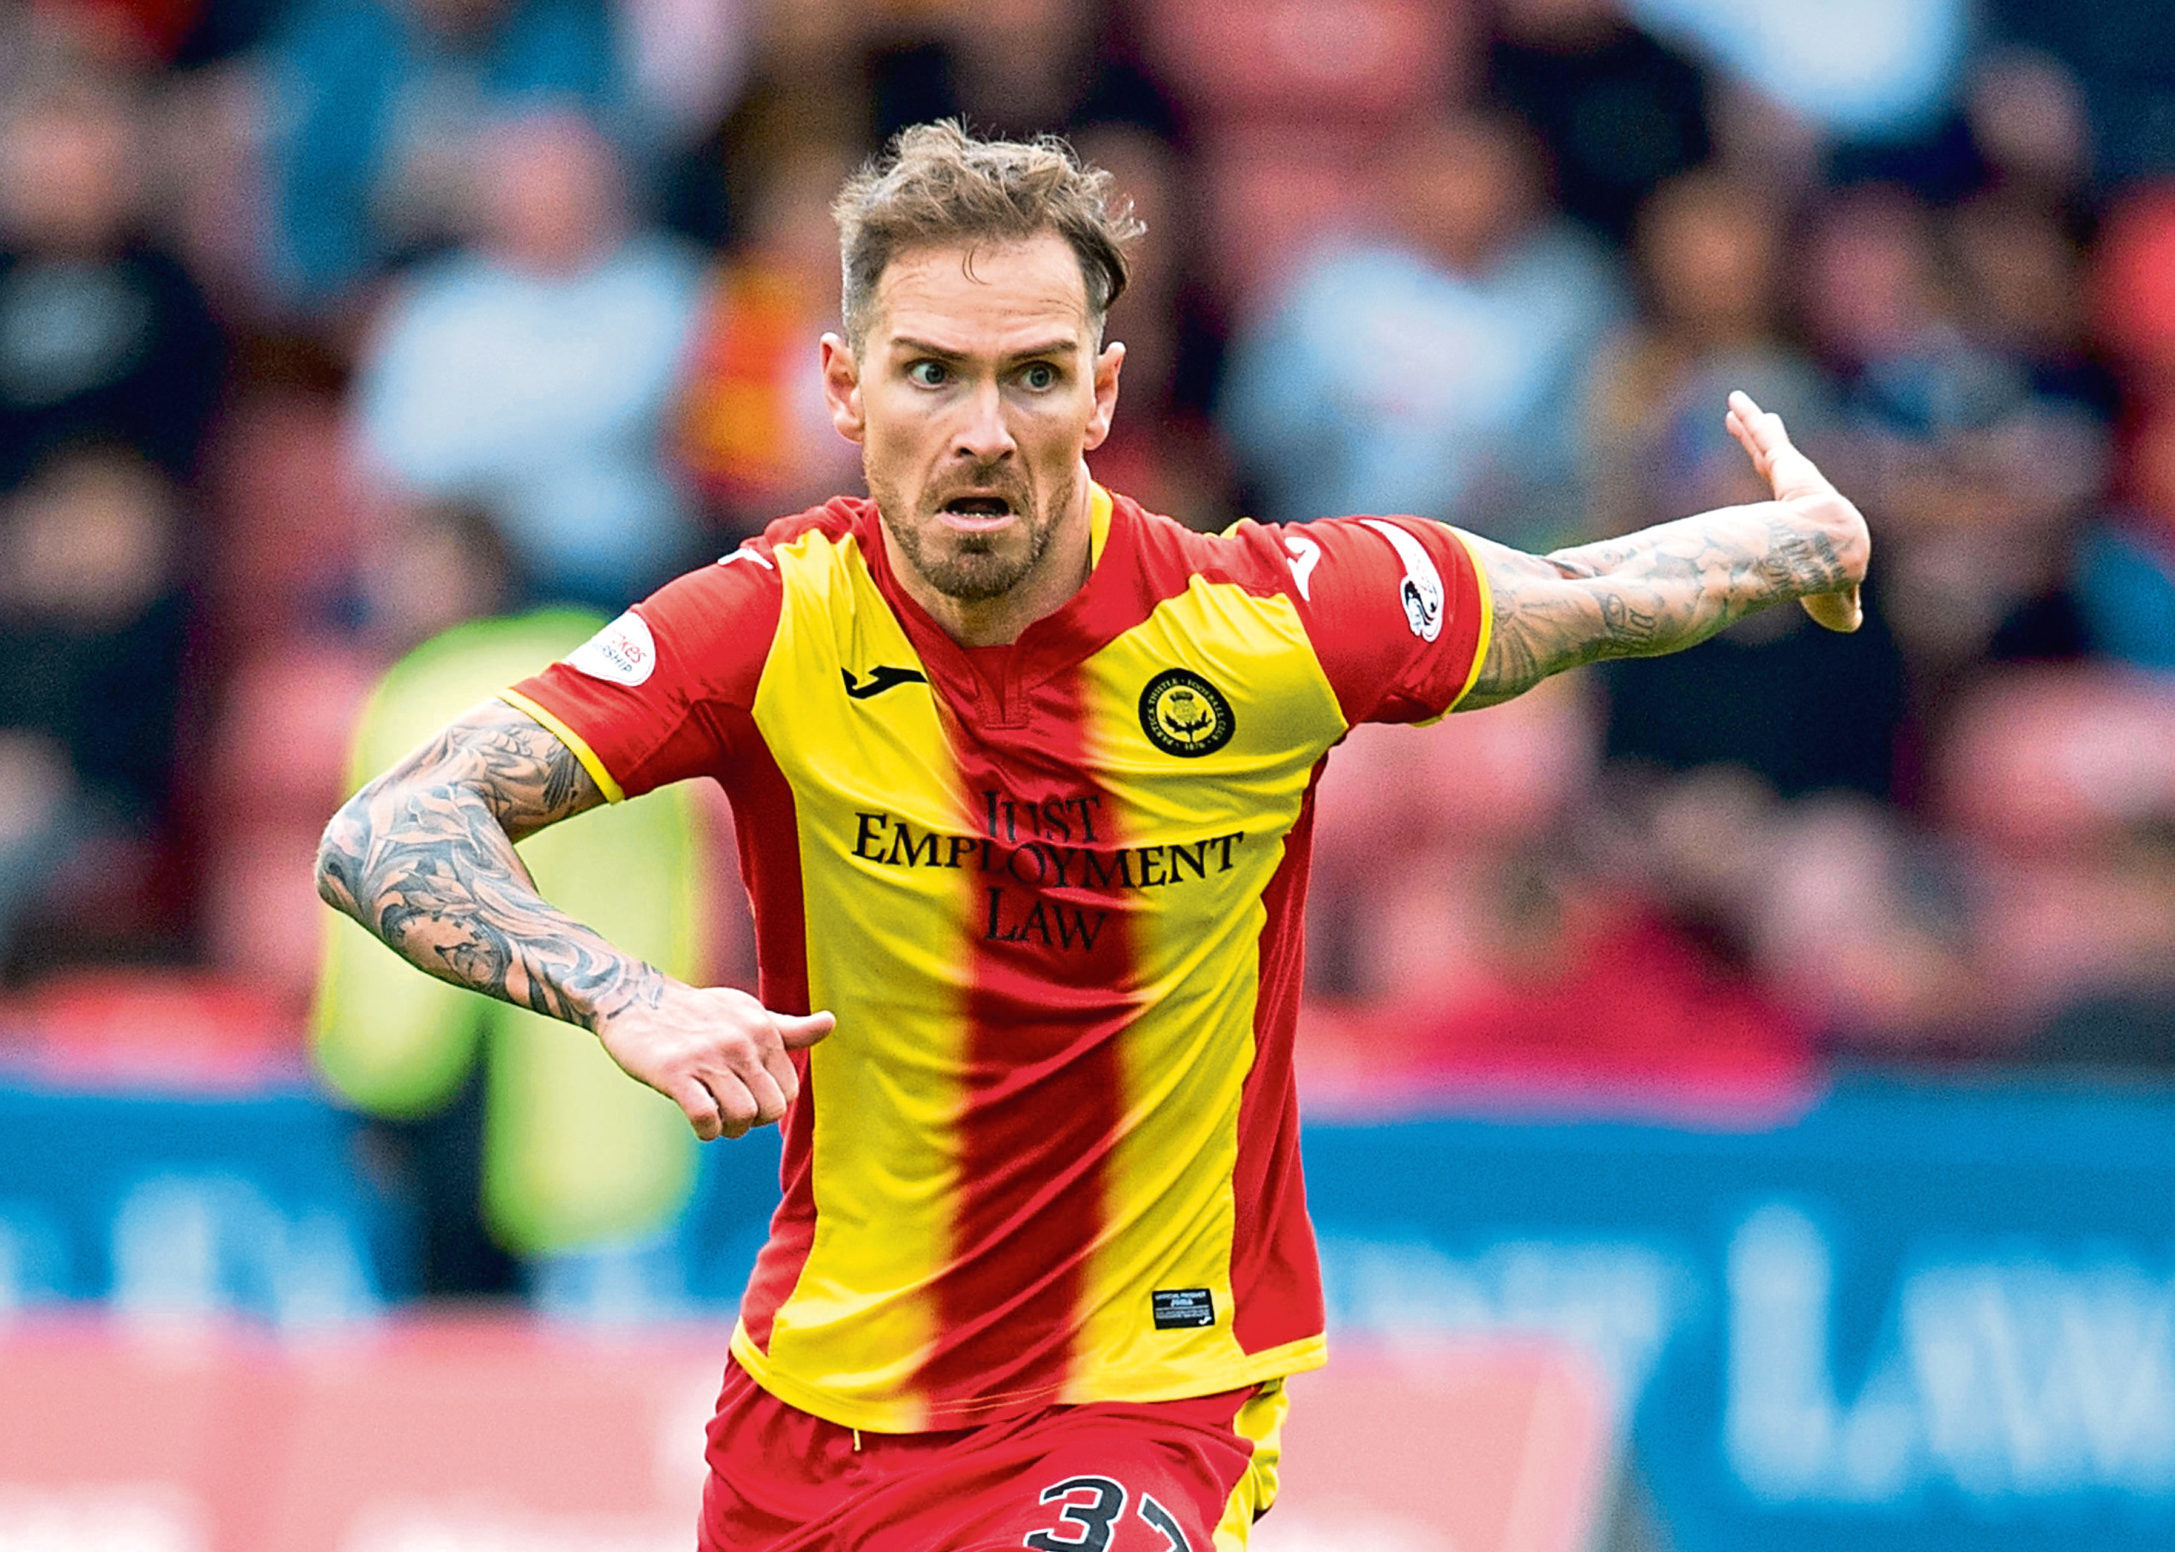 Former Ross County and Partick Thistle midfielder Martin Woods has been on trial at Dundee United over the past few days.